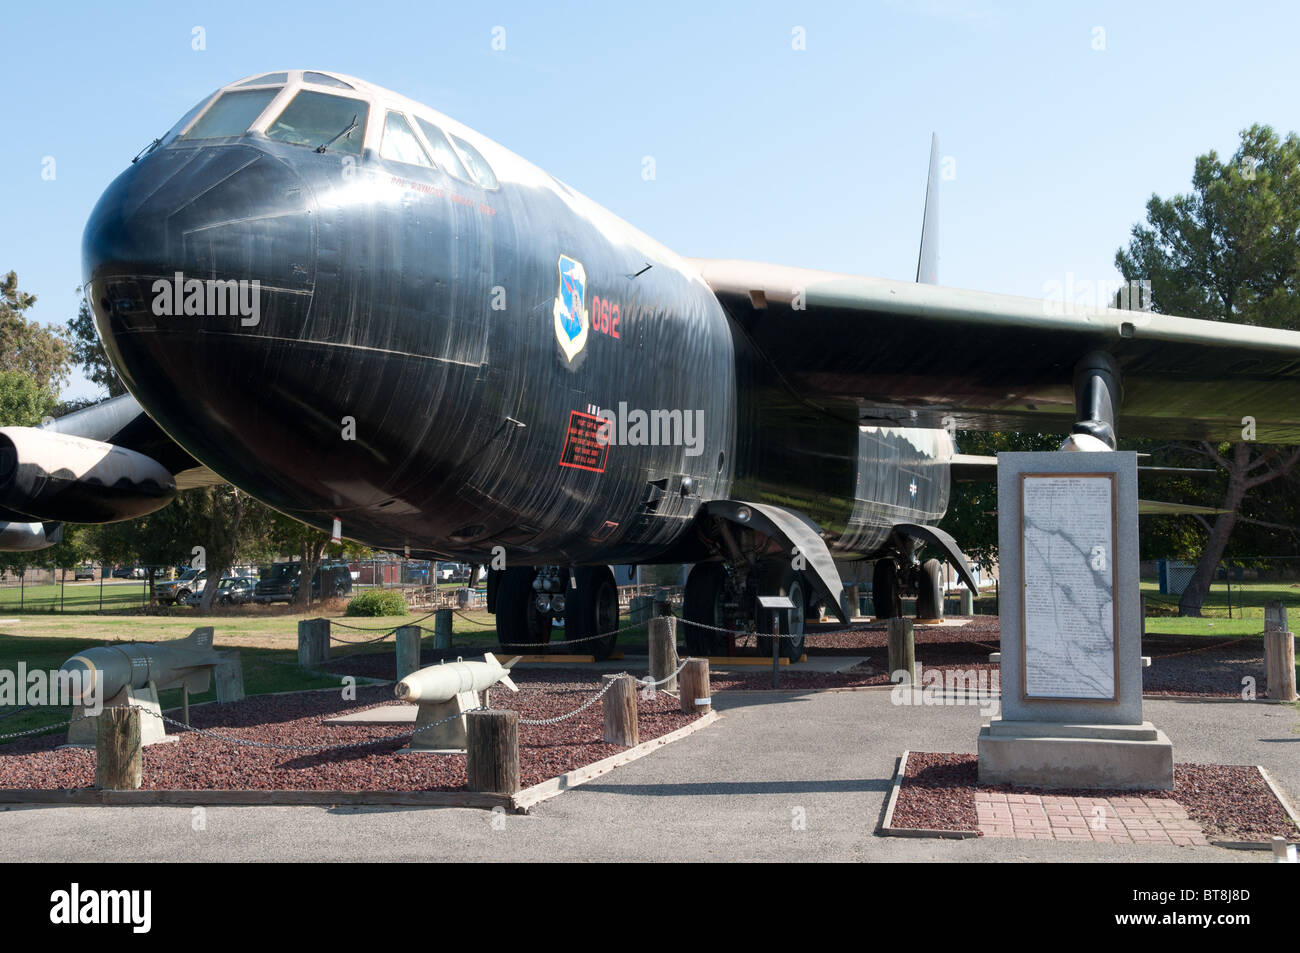 A B-52 bomber plane on display at the Castle Air Museum, Merced California USA. - Stock Image